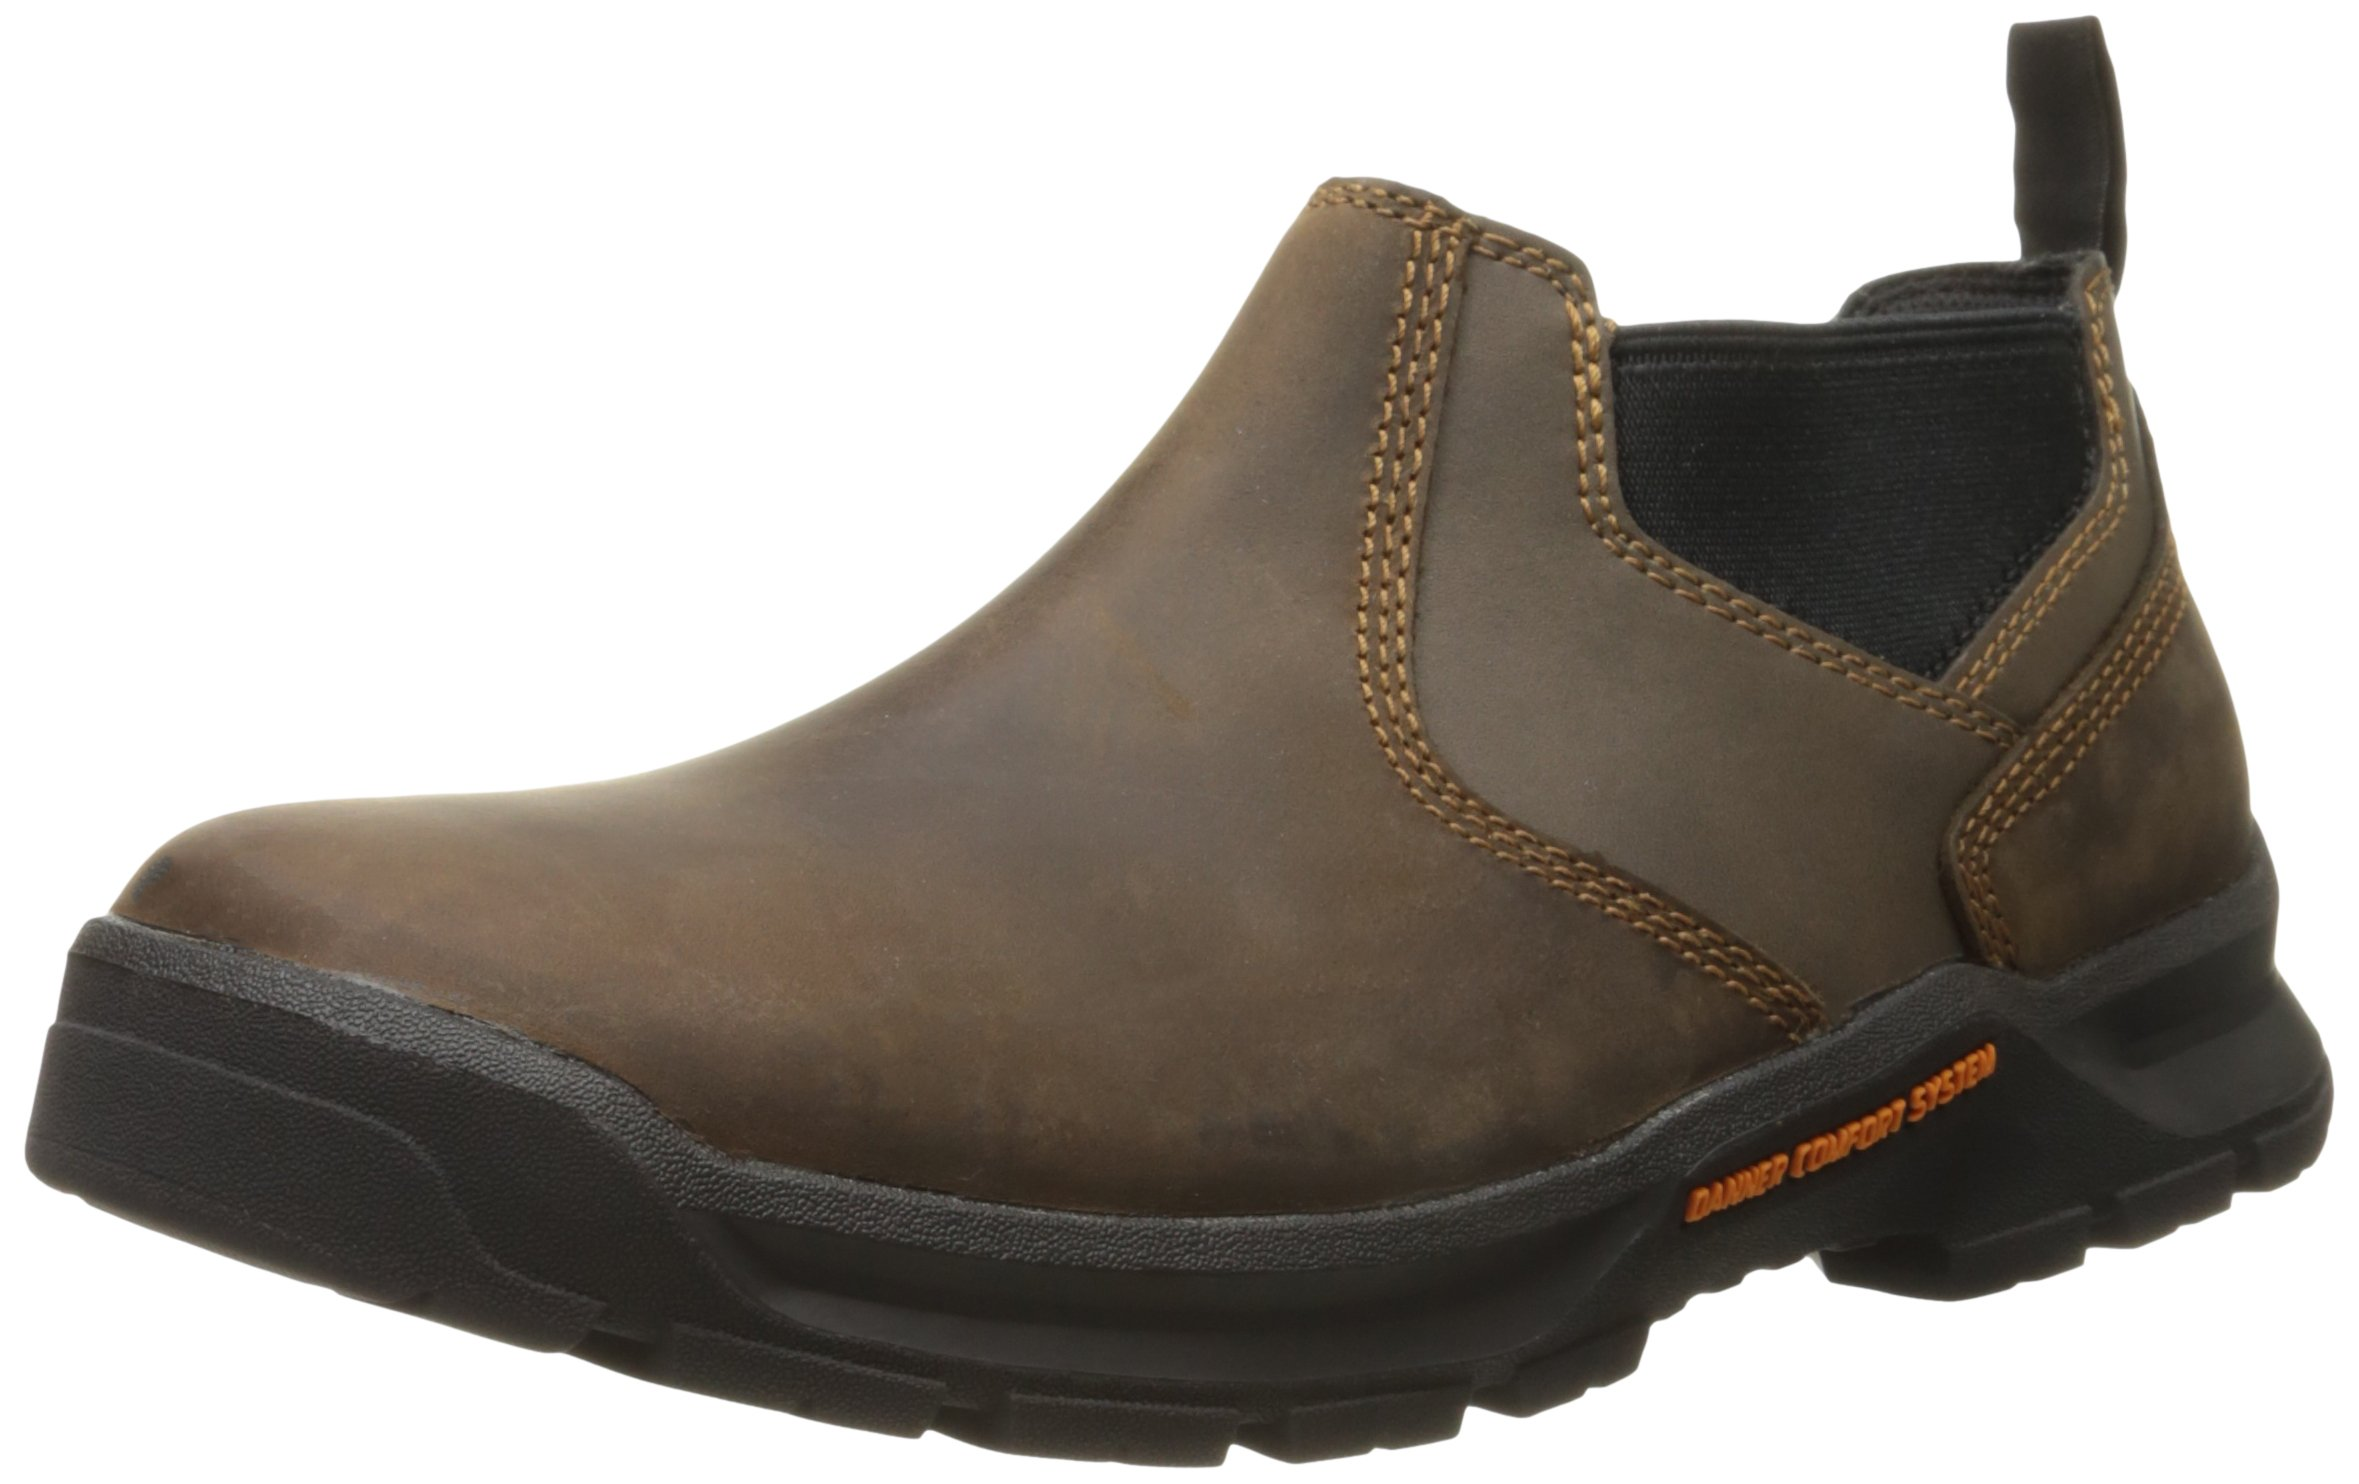 Danner Men's Crafter Romeo 3 inch Work Boot, Brown, 10.5 2E US